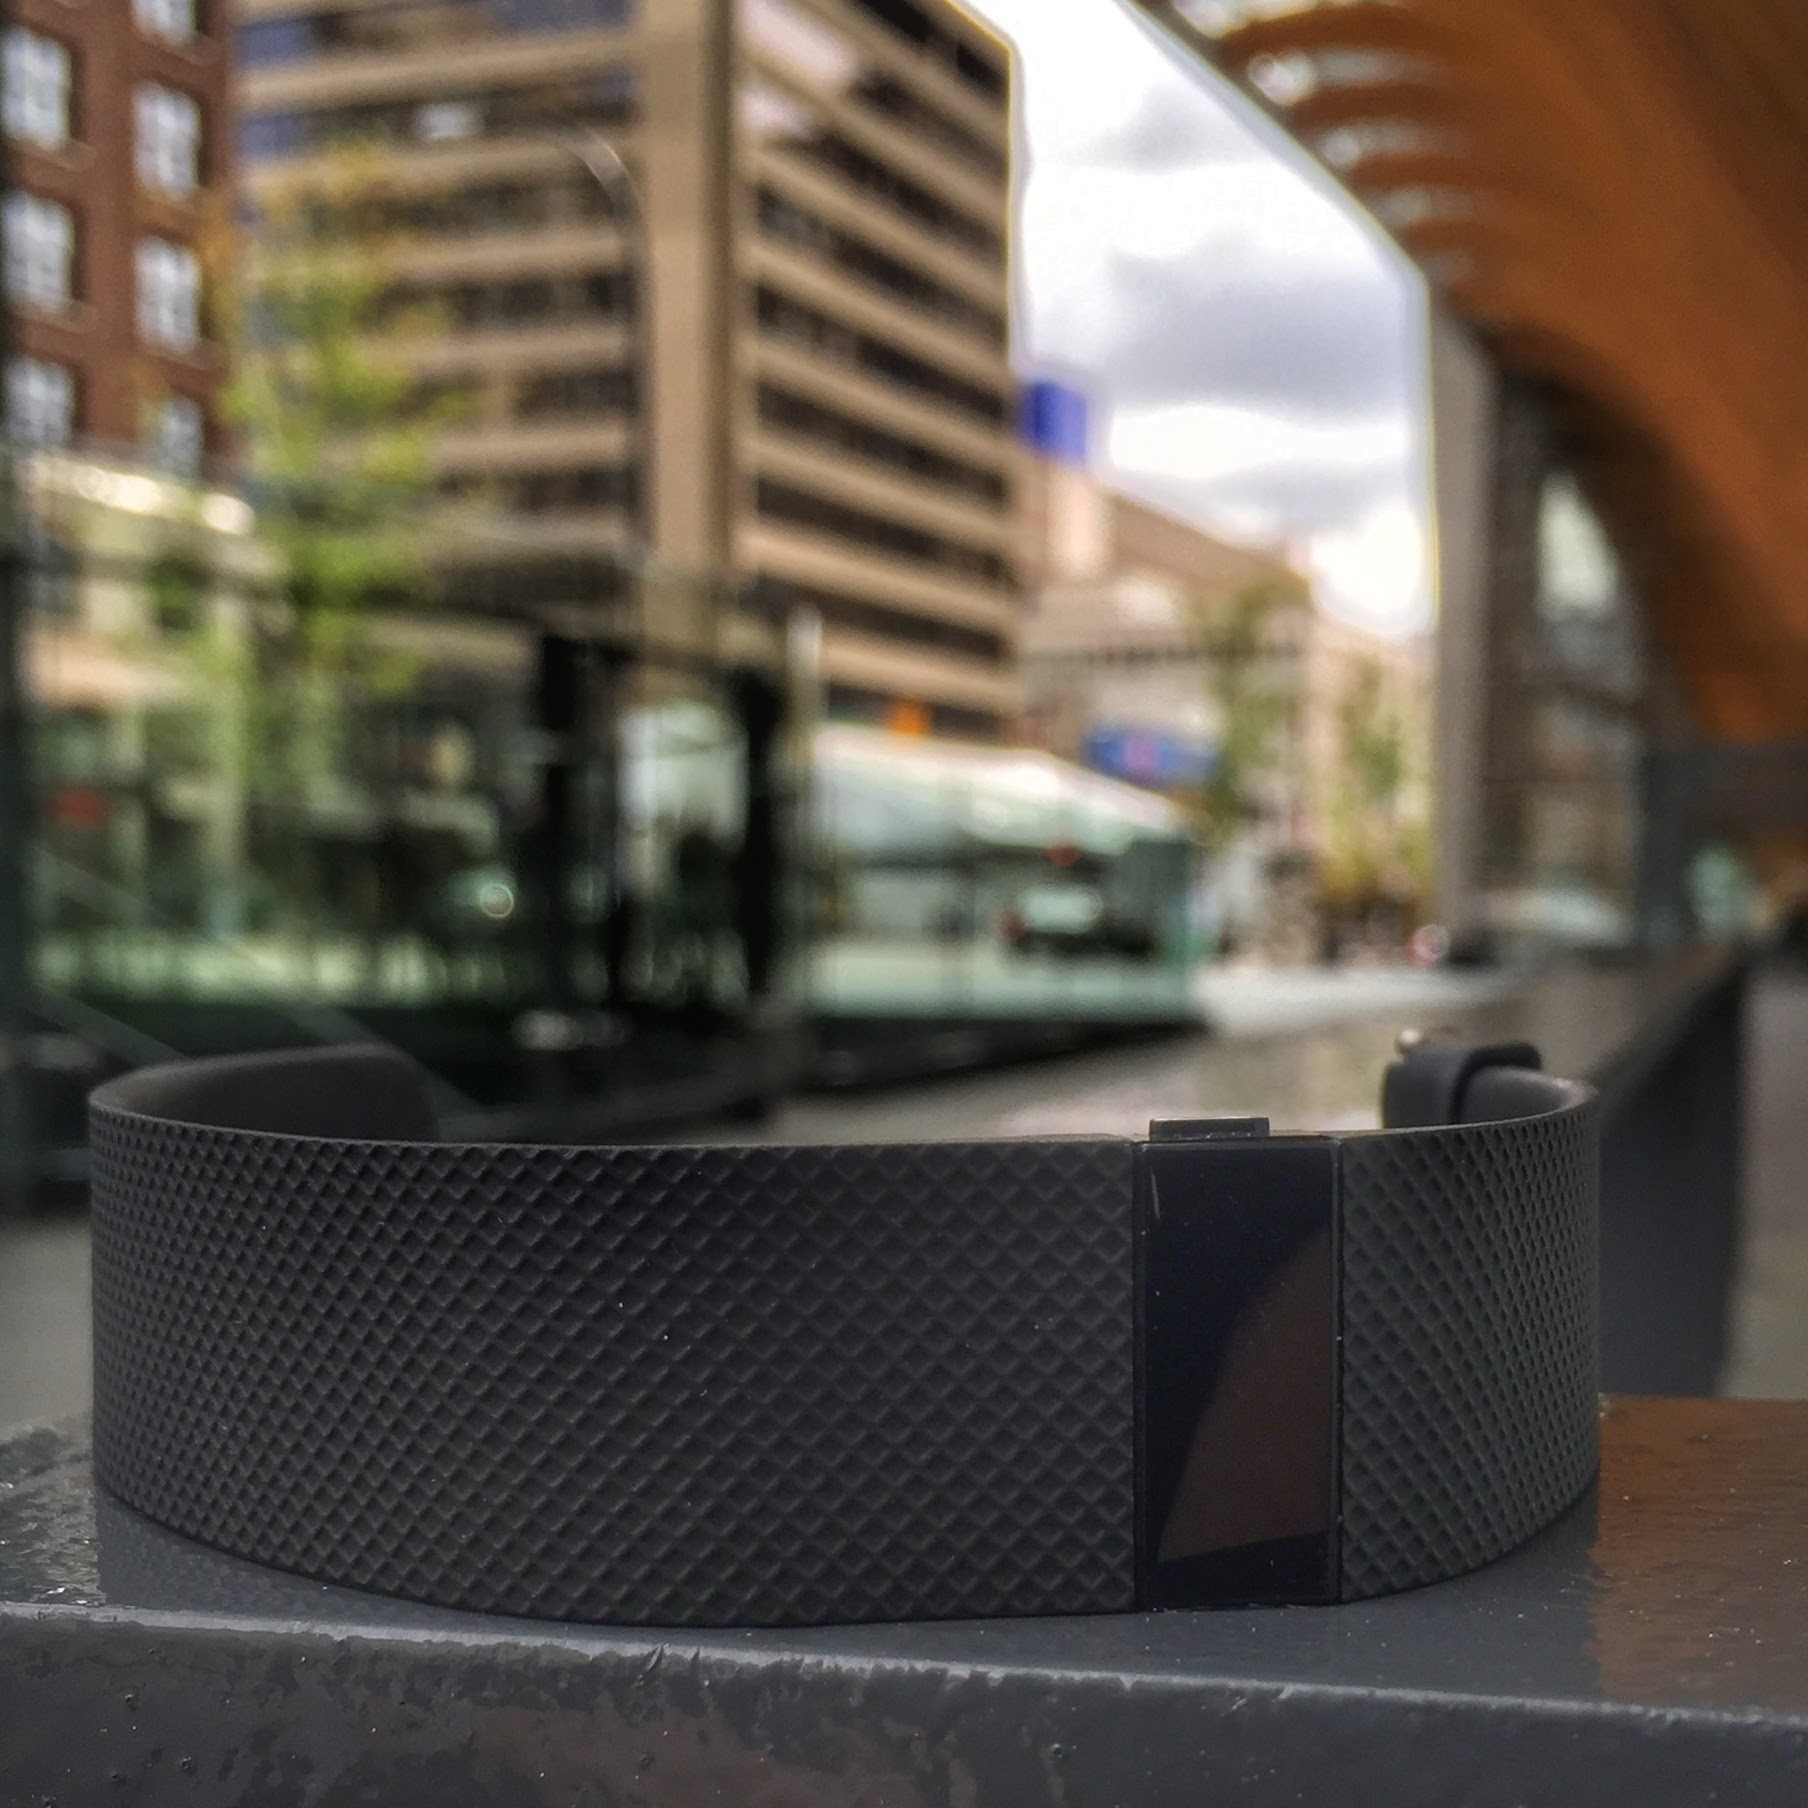 Fitness Bands Vancouver: WFLBC